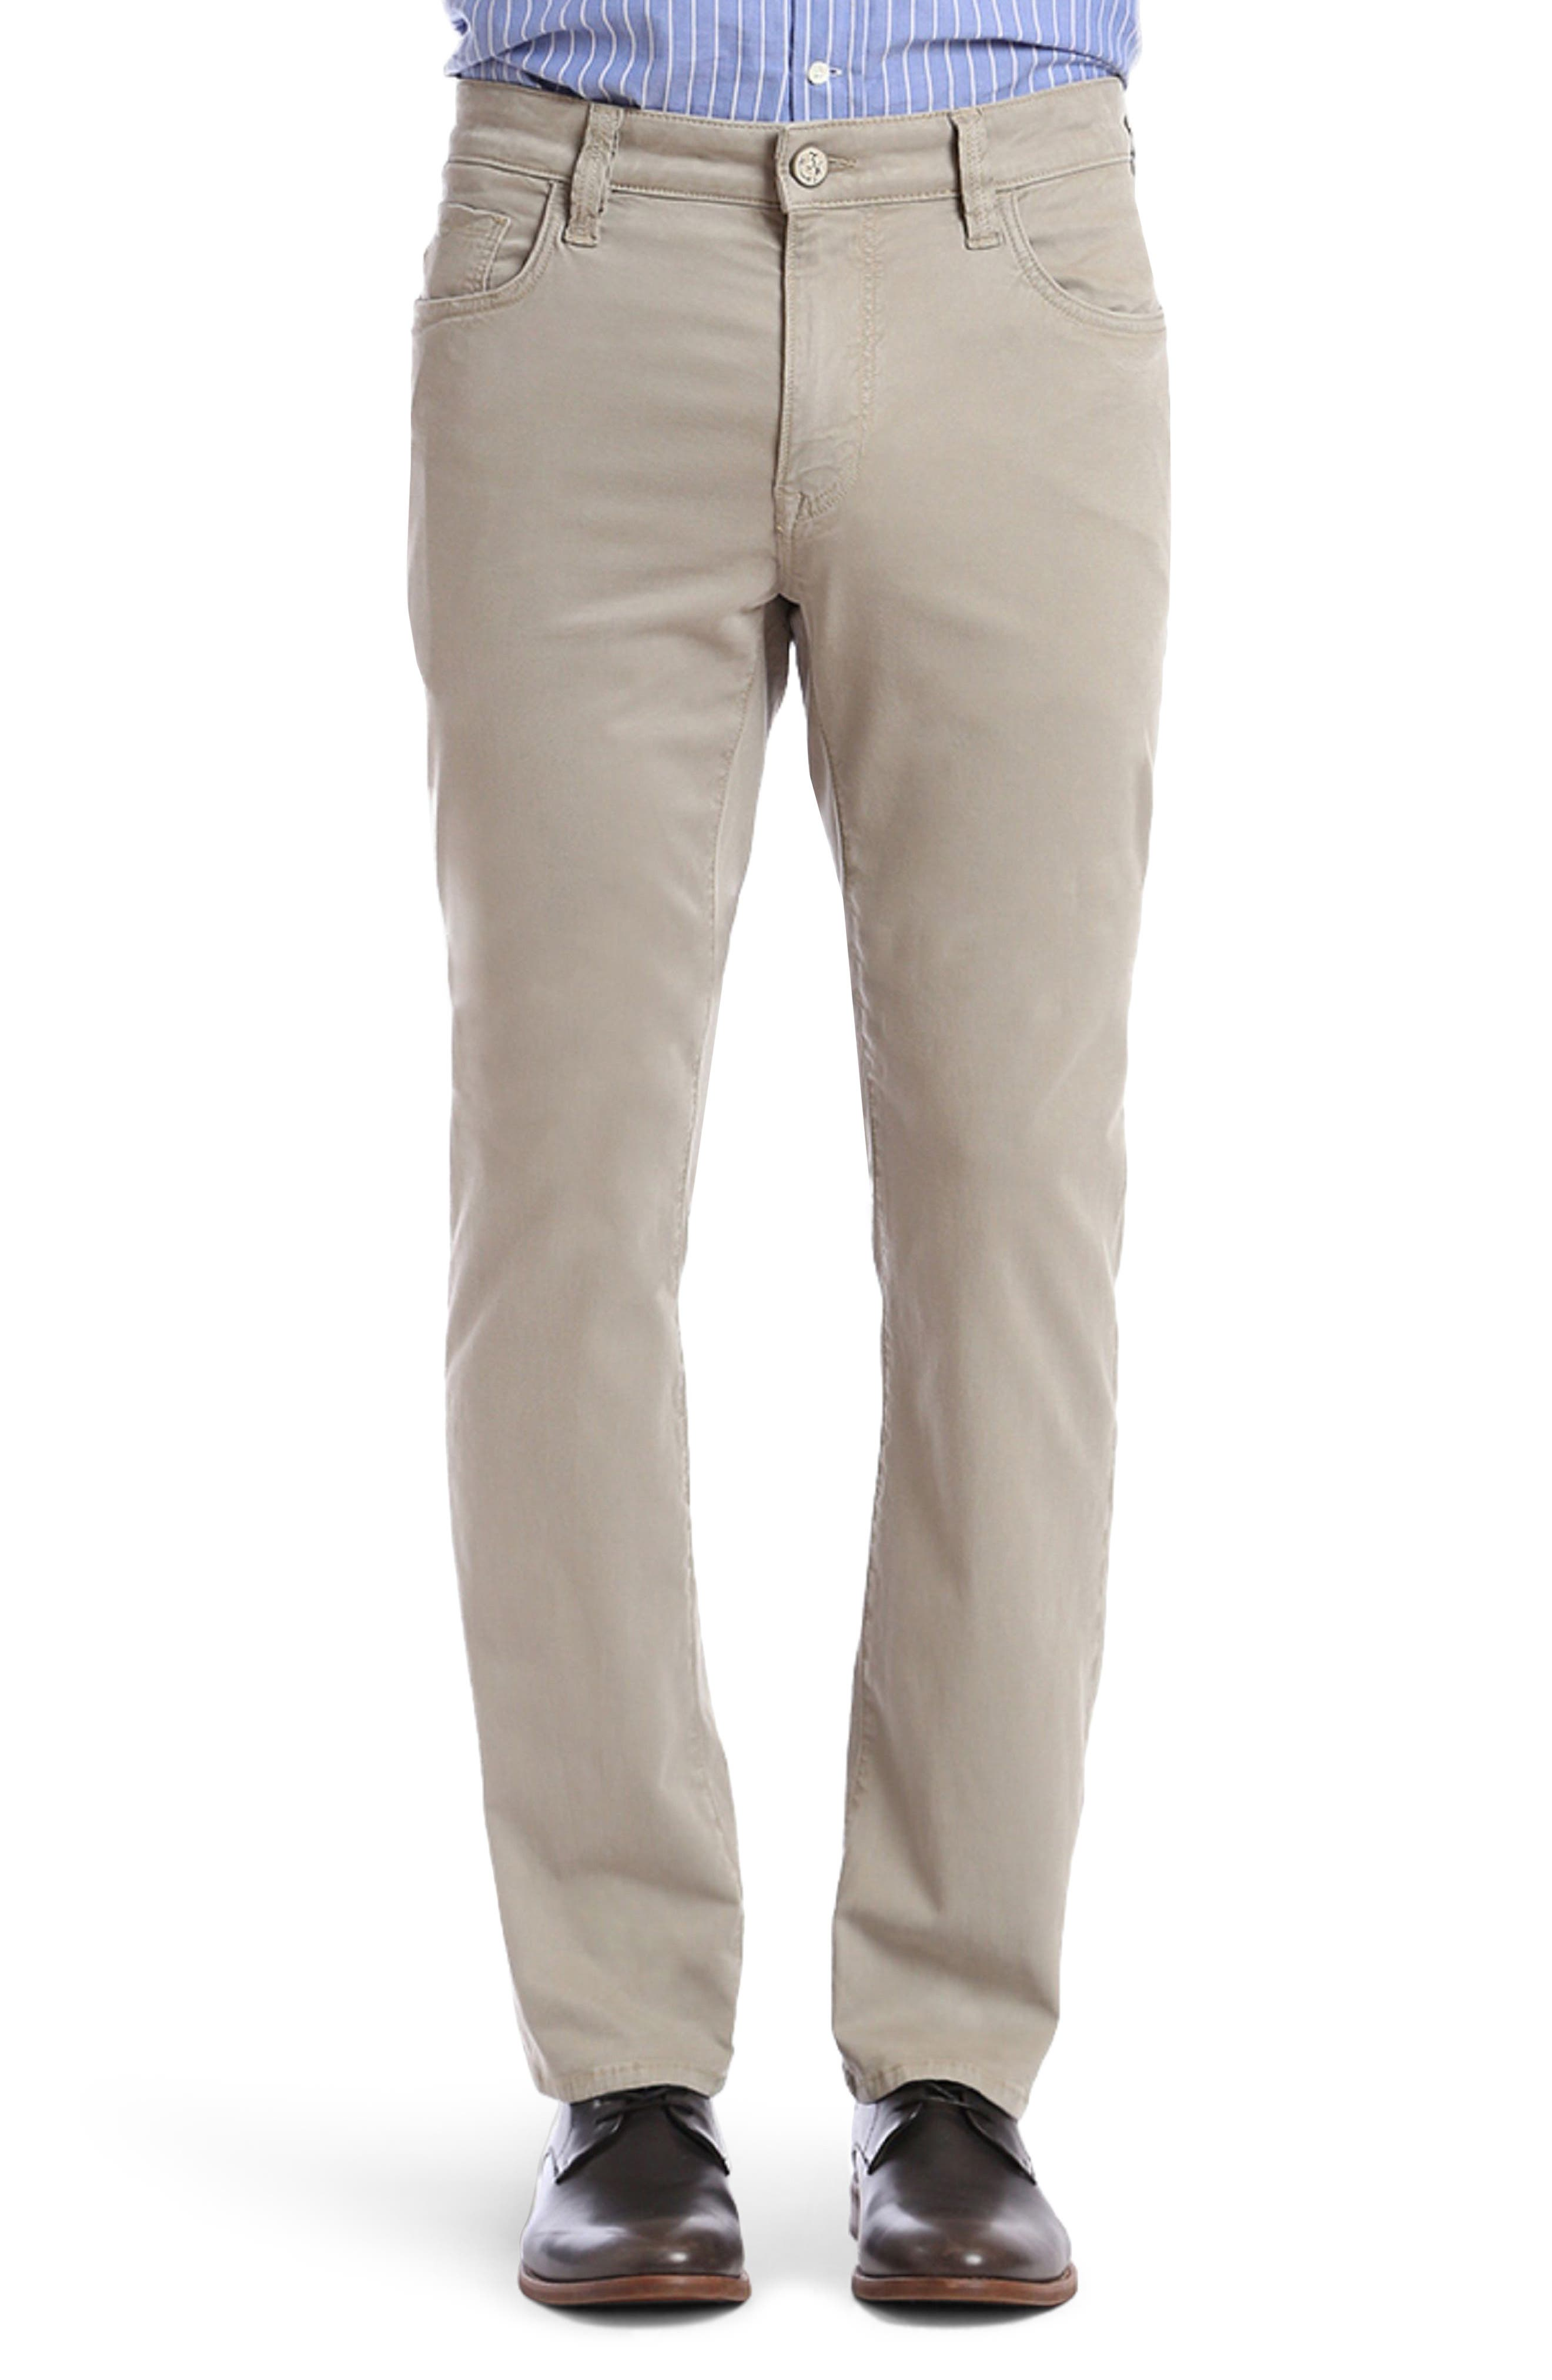 Courage Straight Fit Twill Pants,                         Main,                         color, KHAKI FINE TWILL